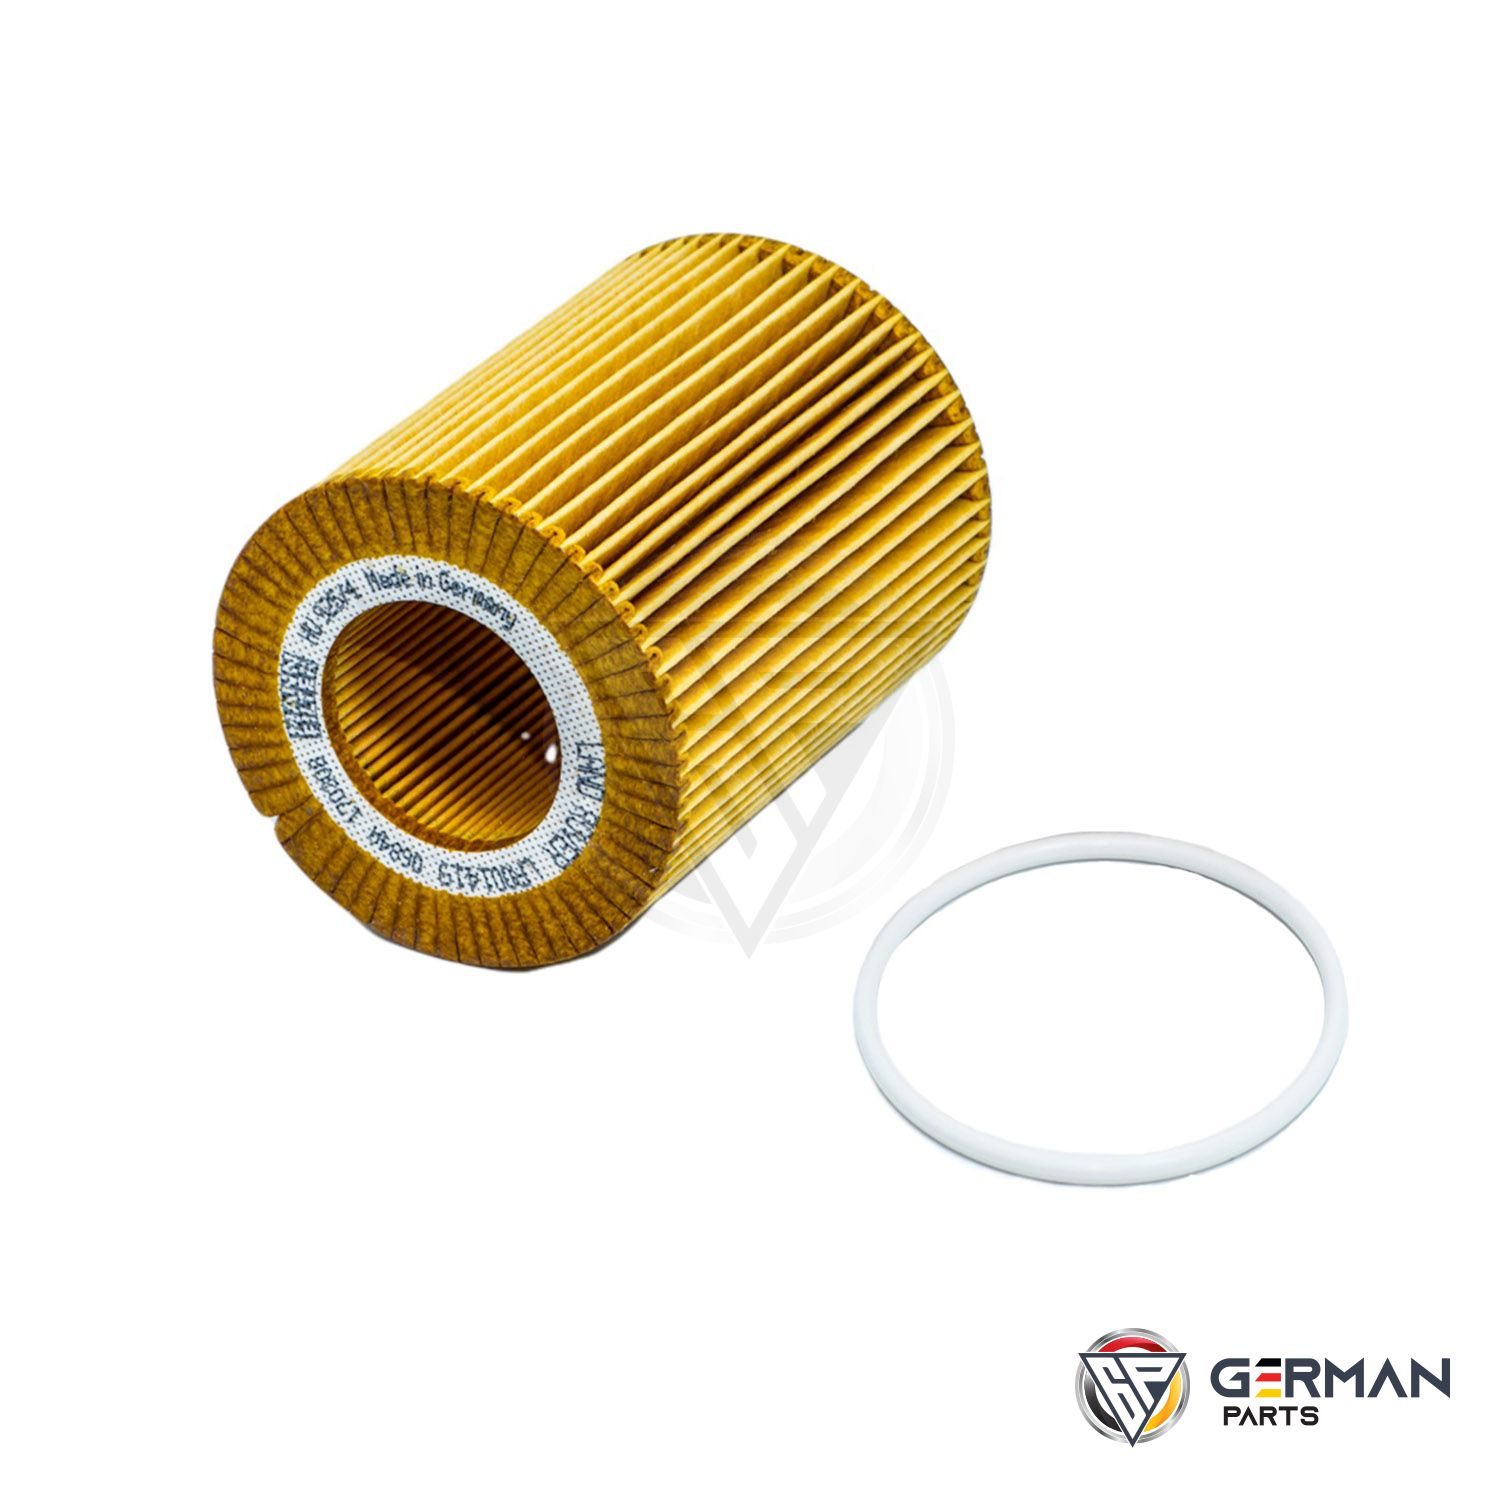 Buy Land Rover Oil Filter LR001419 - German Parts